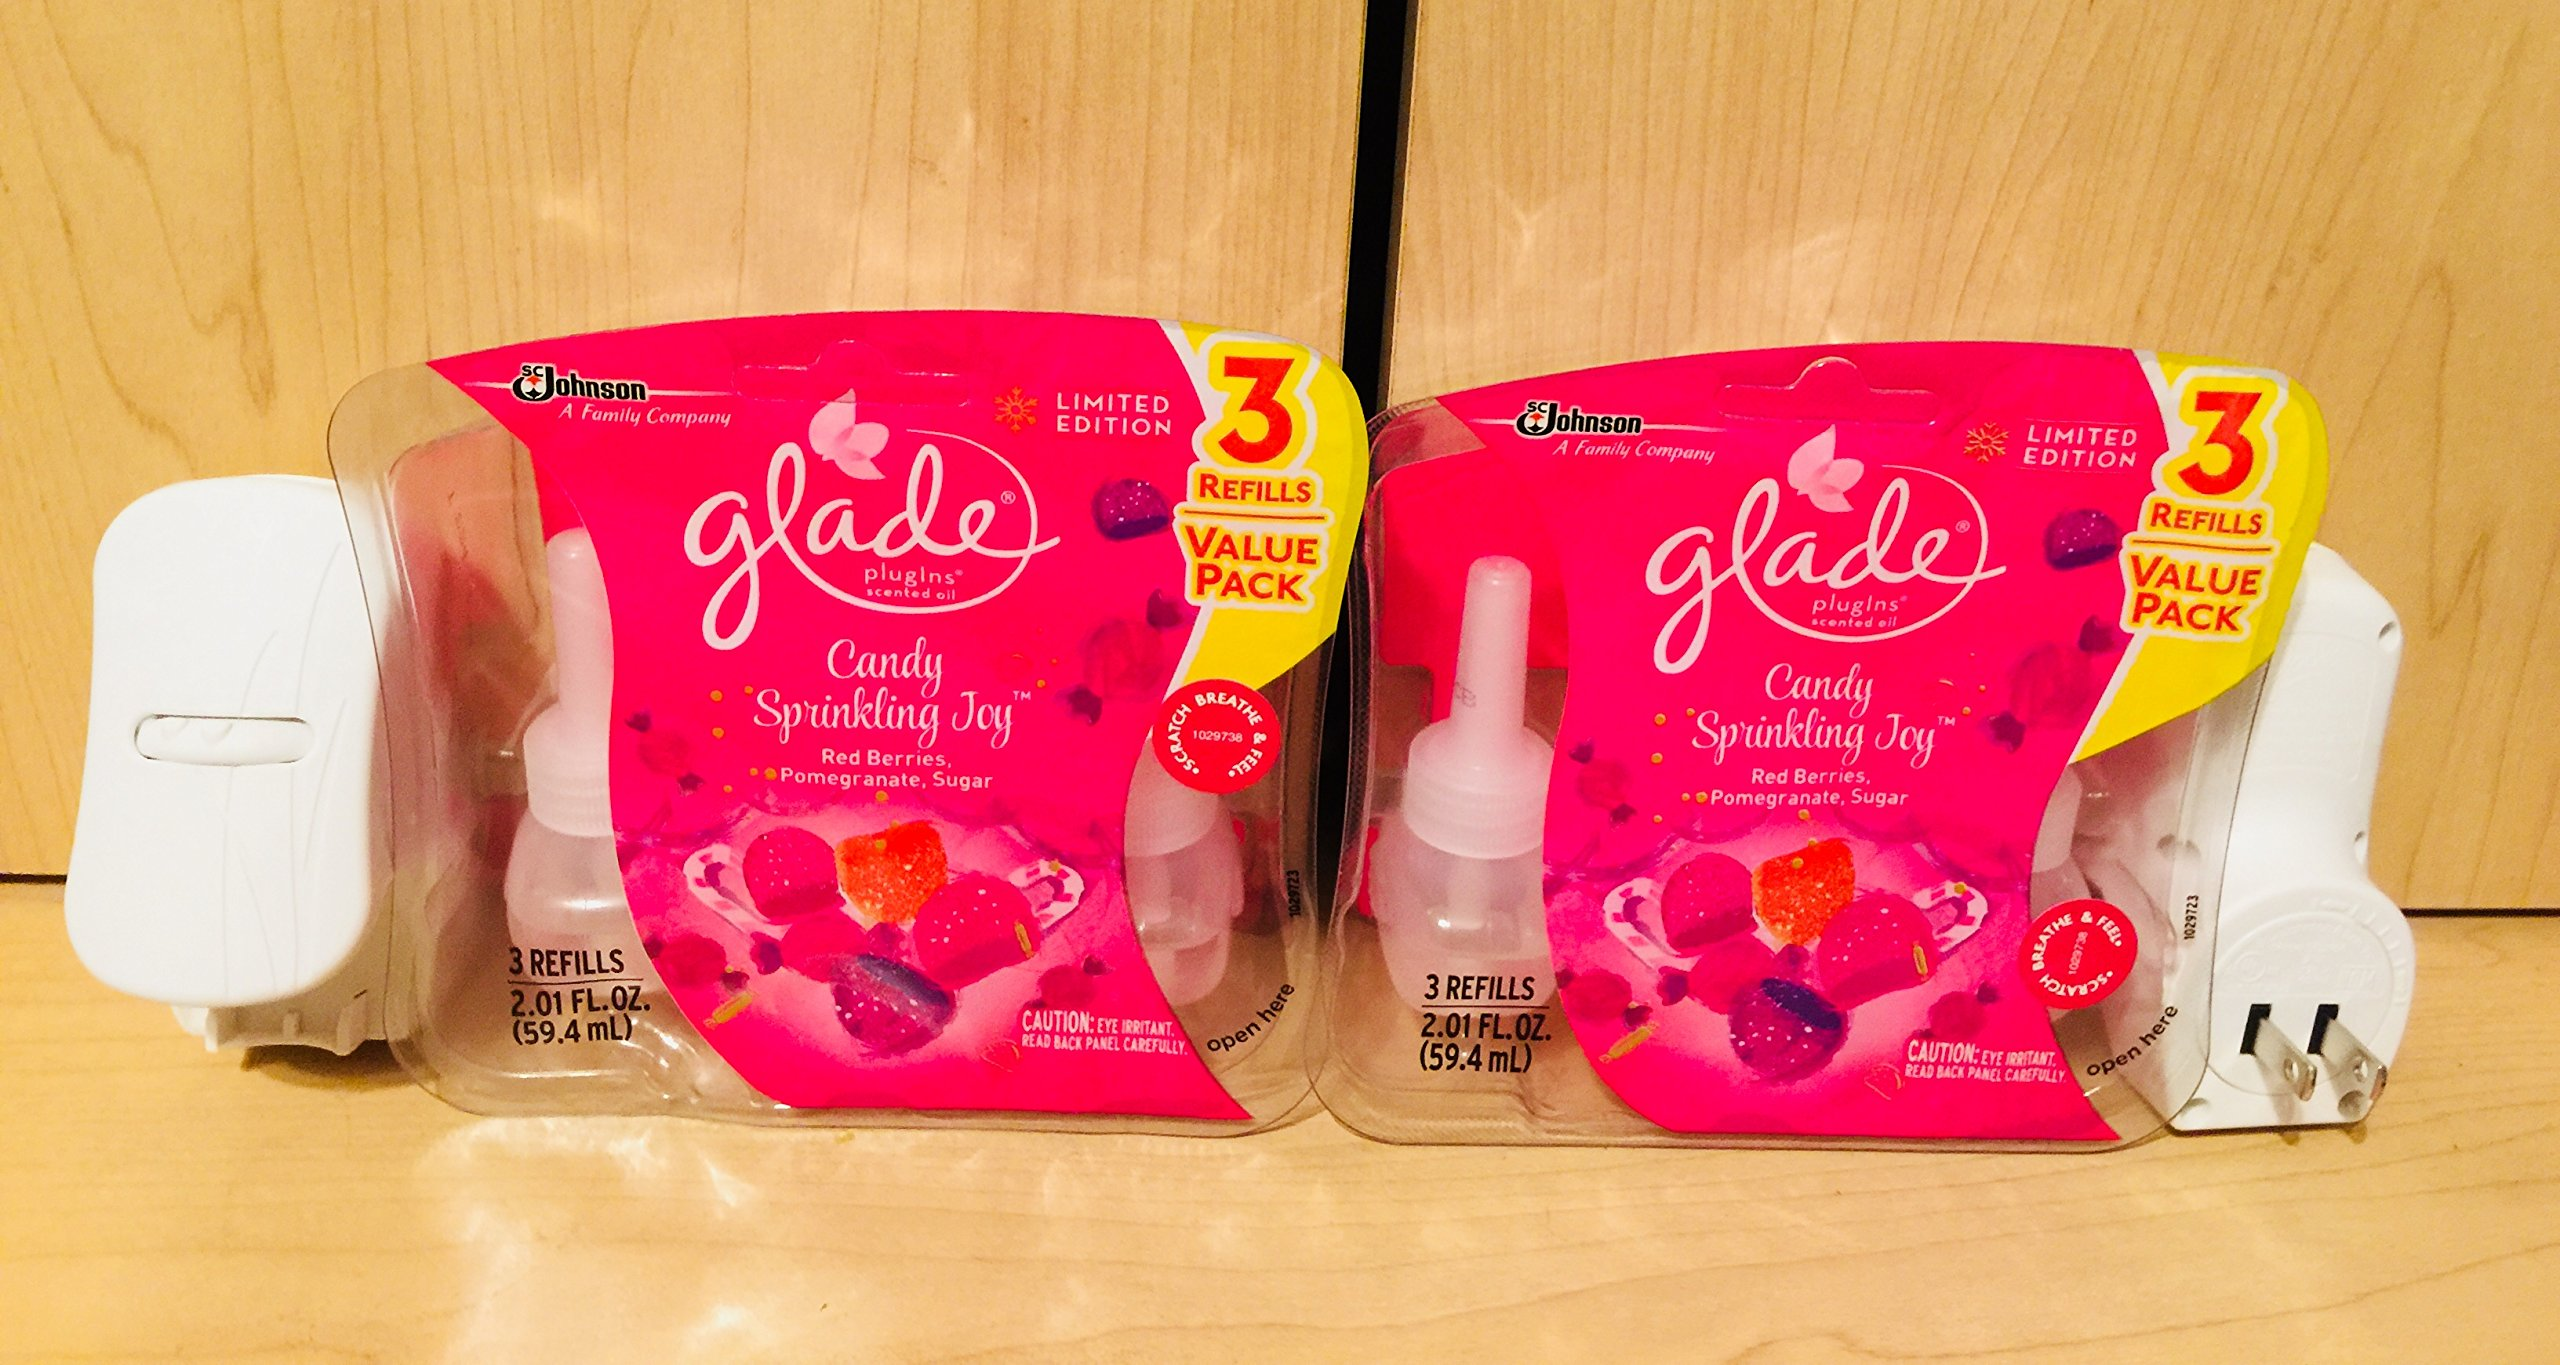 Glade Plugins Scented Oil Limited Edition Candy Sprinkling Joy 2 Warmers 6 Refills